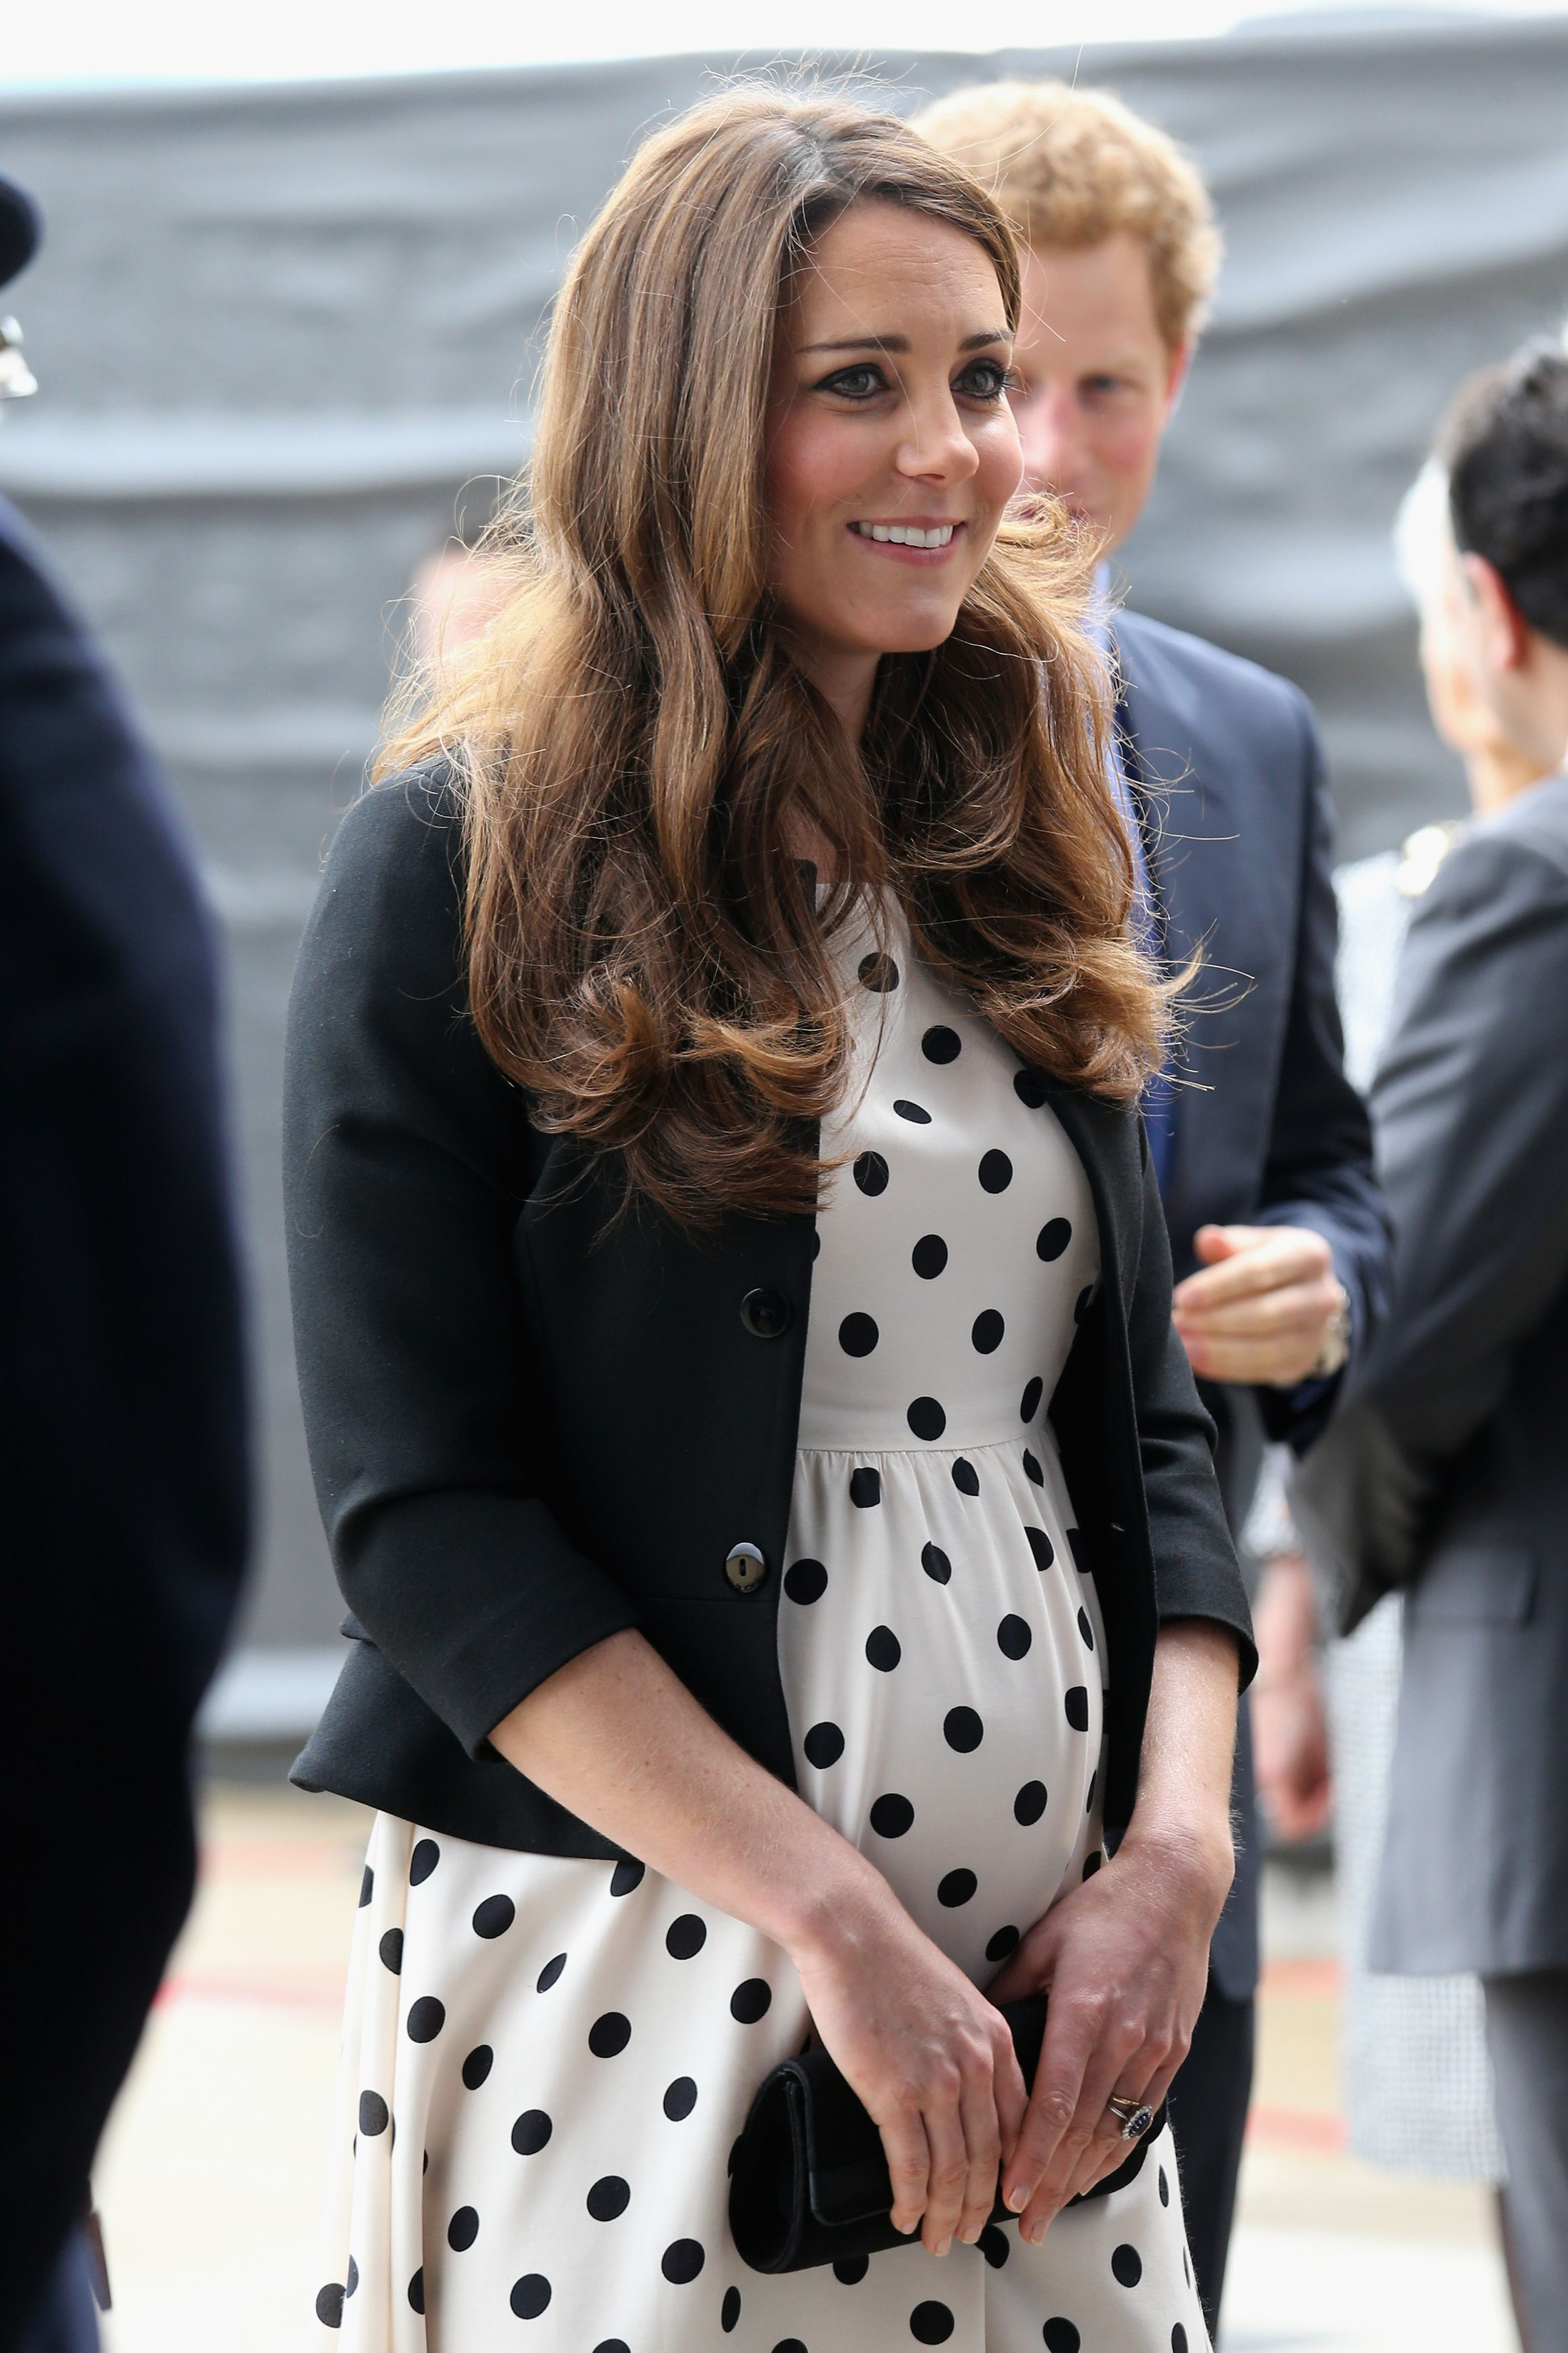 Catherine, Duchess of Cambridge arrives for her visit to Warner Bros studios in Leavesden, Herts where the popular Harry Potter movies were produced on April 26, 2013.